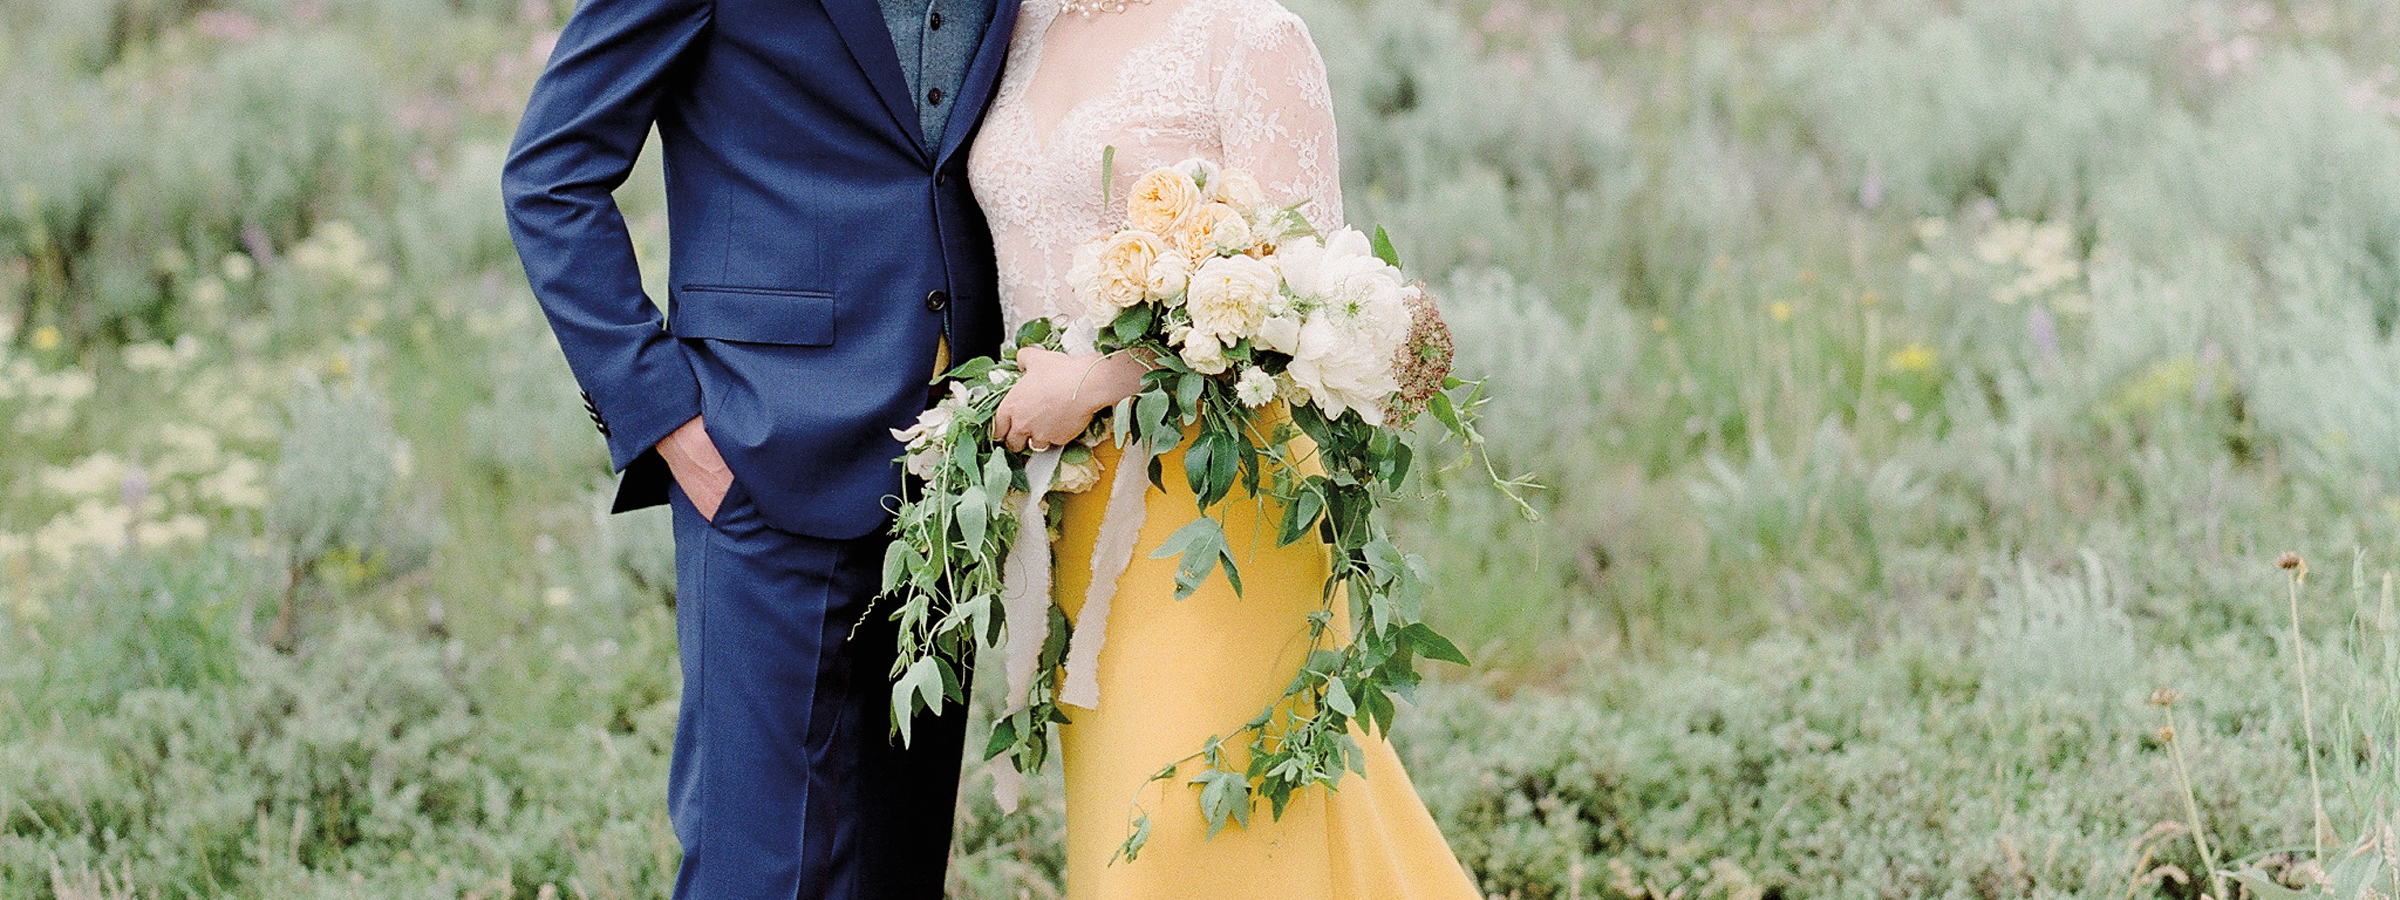 Flutter Magazine Issue 17 grand teton wyoming wedding with jose villa, sarah seven, emily riggs